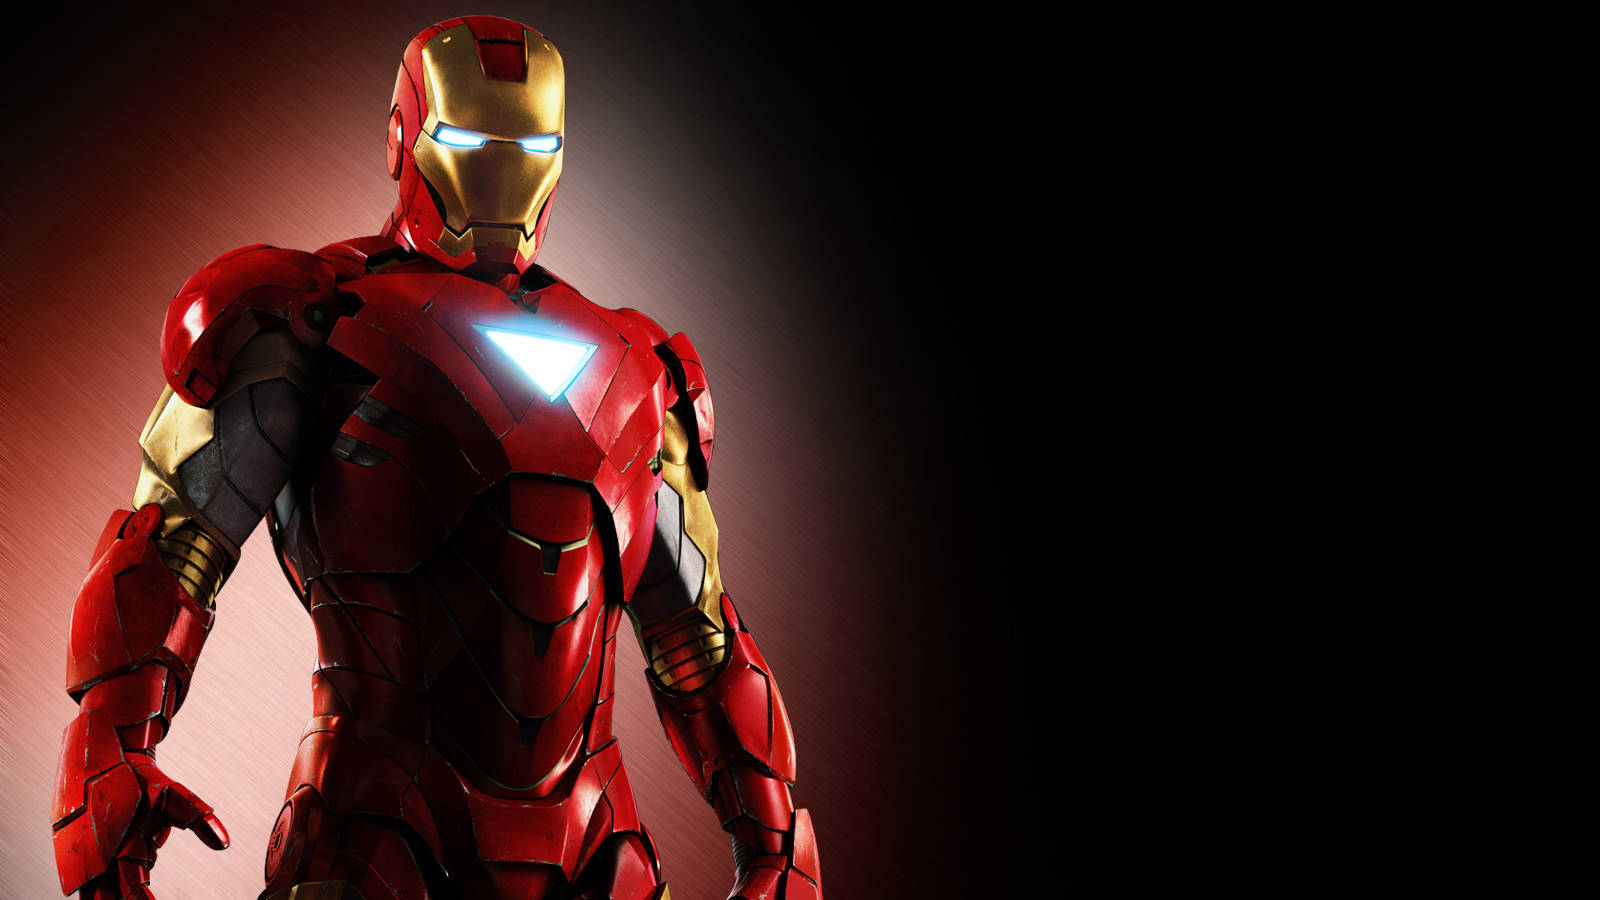 Iron Man 1600900 Wallpaper 1117034 1600x900